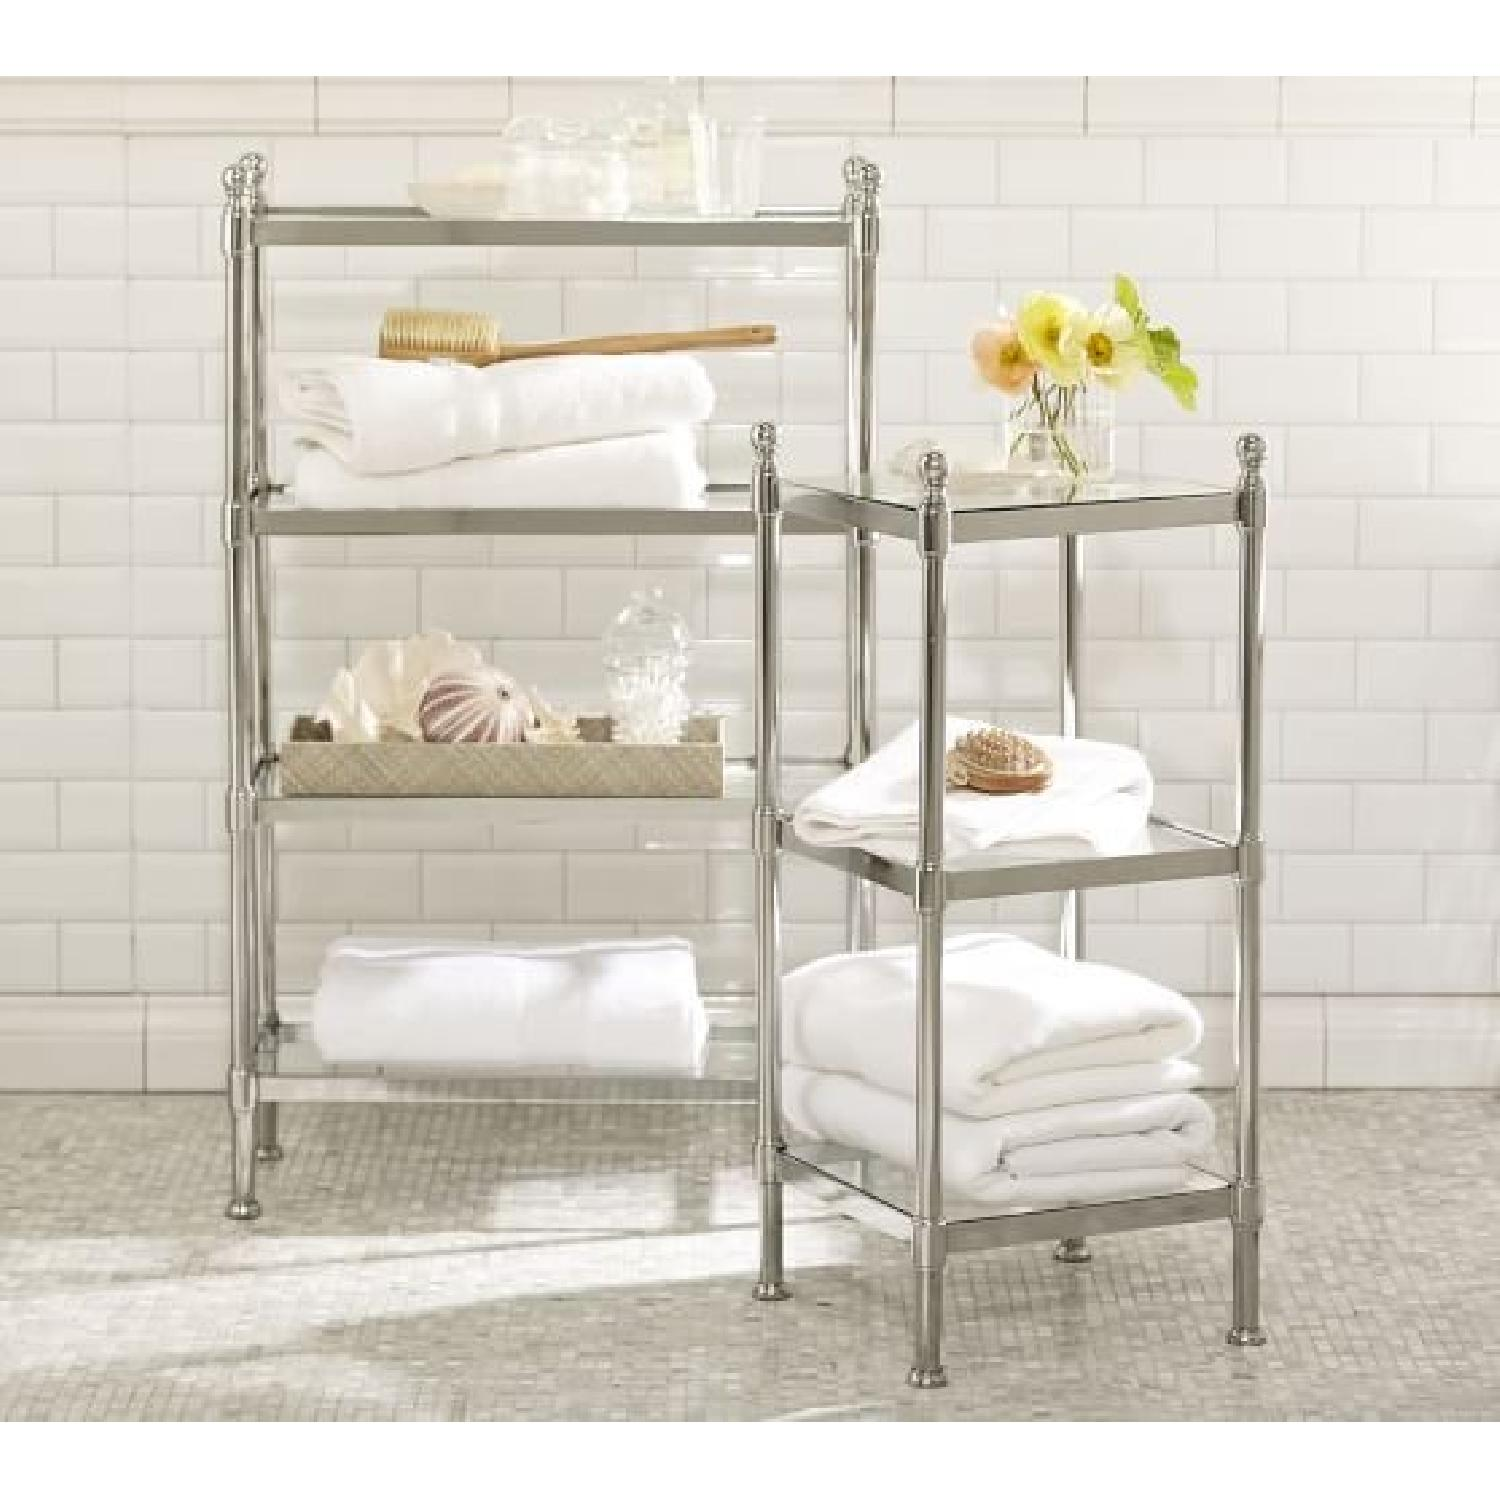 Etagere Metal Pottery Barn Large Metal Etagere In Polished Nickel Finish